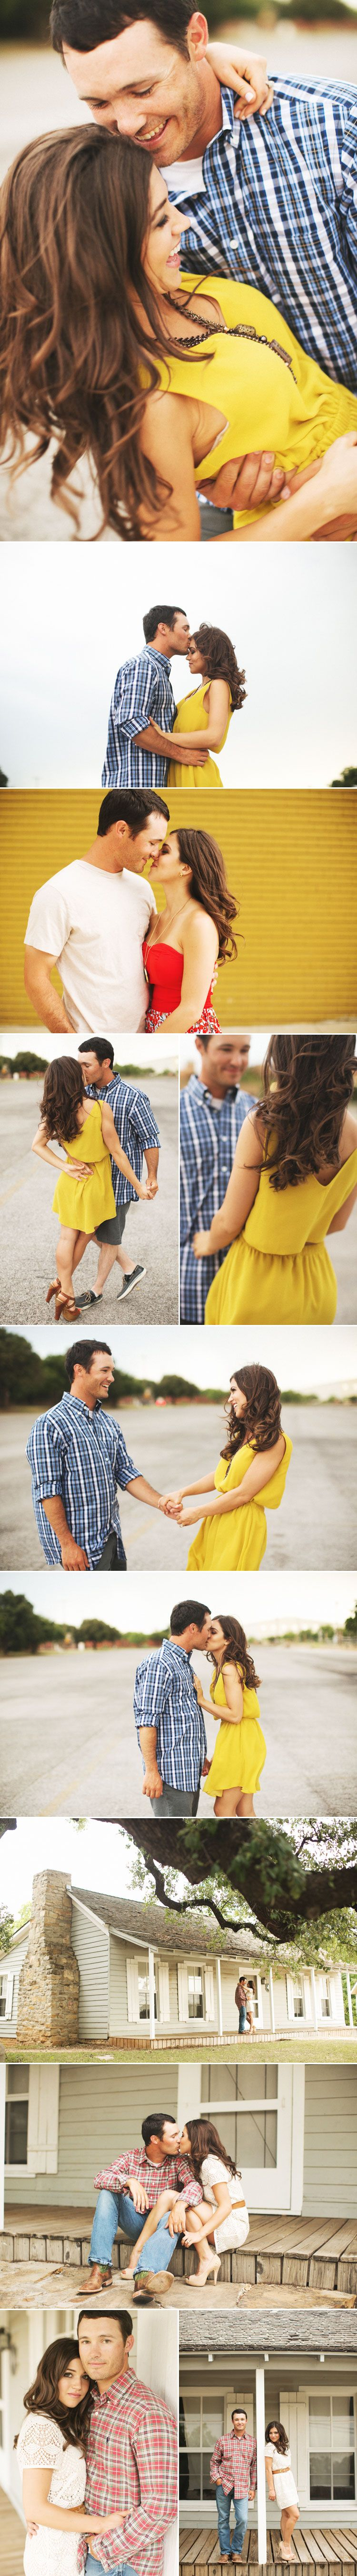 Love this engagement shoot save the date invite dancing st her